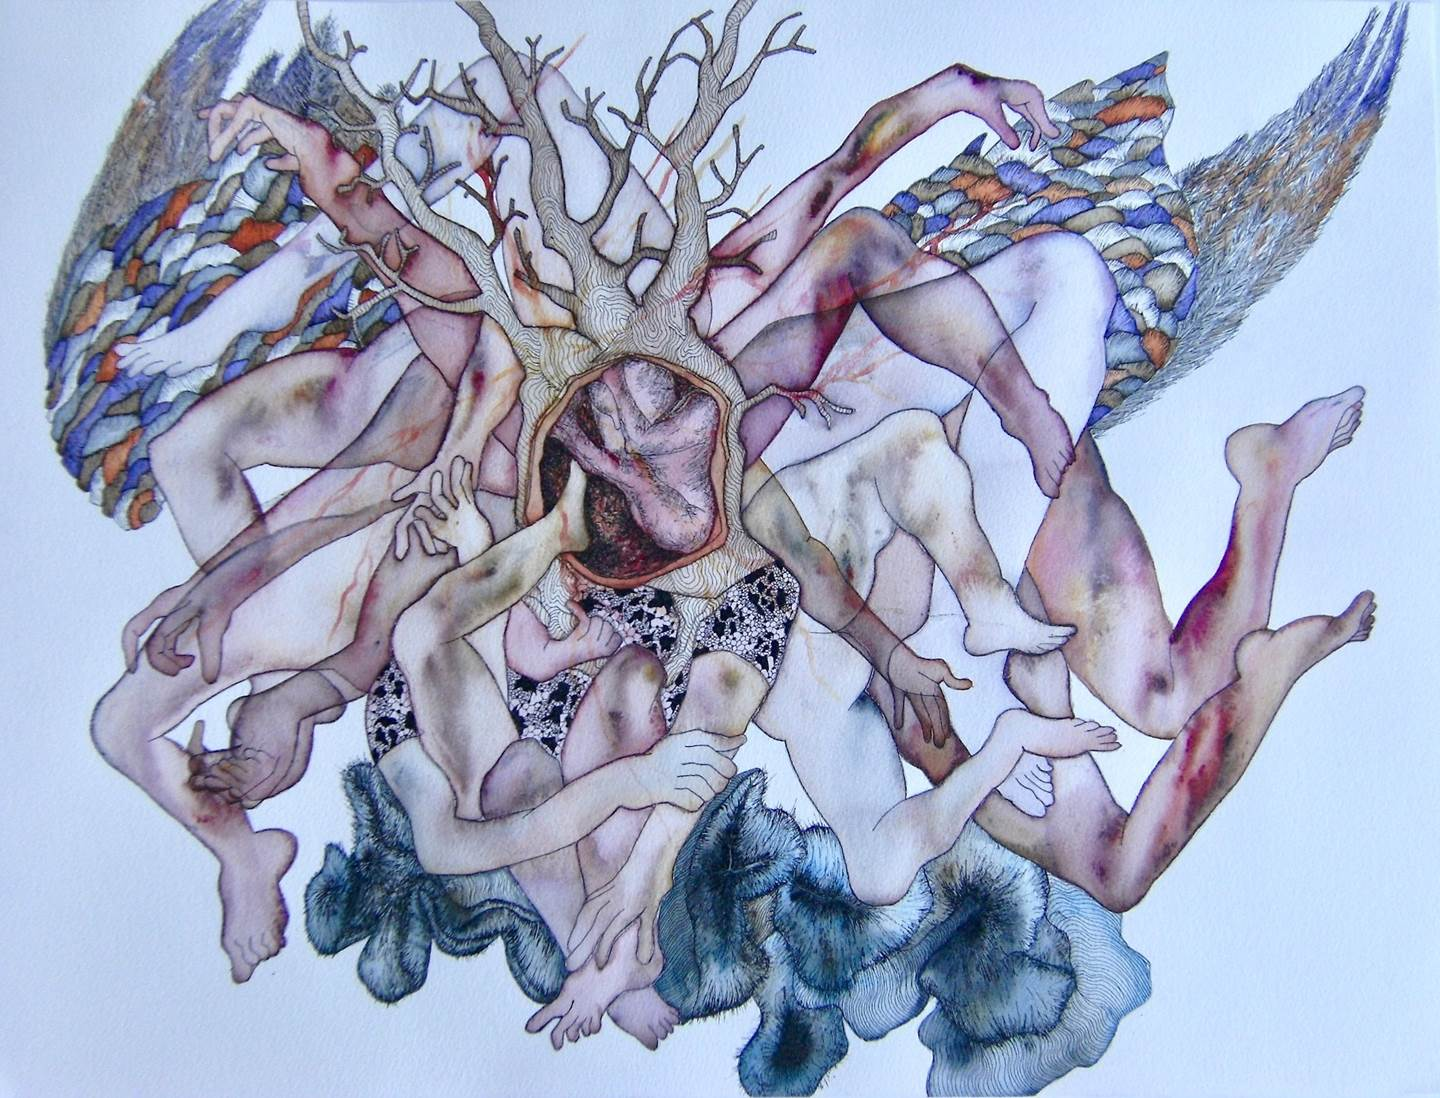 Arbre, original Body Watercolor Drawing and Illustration by lorinet julie